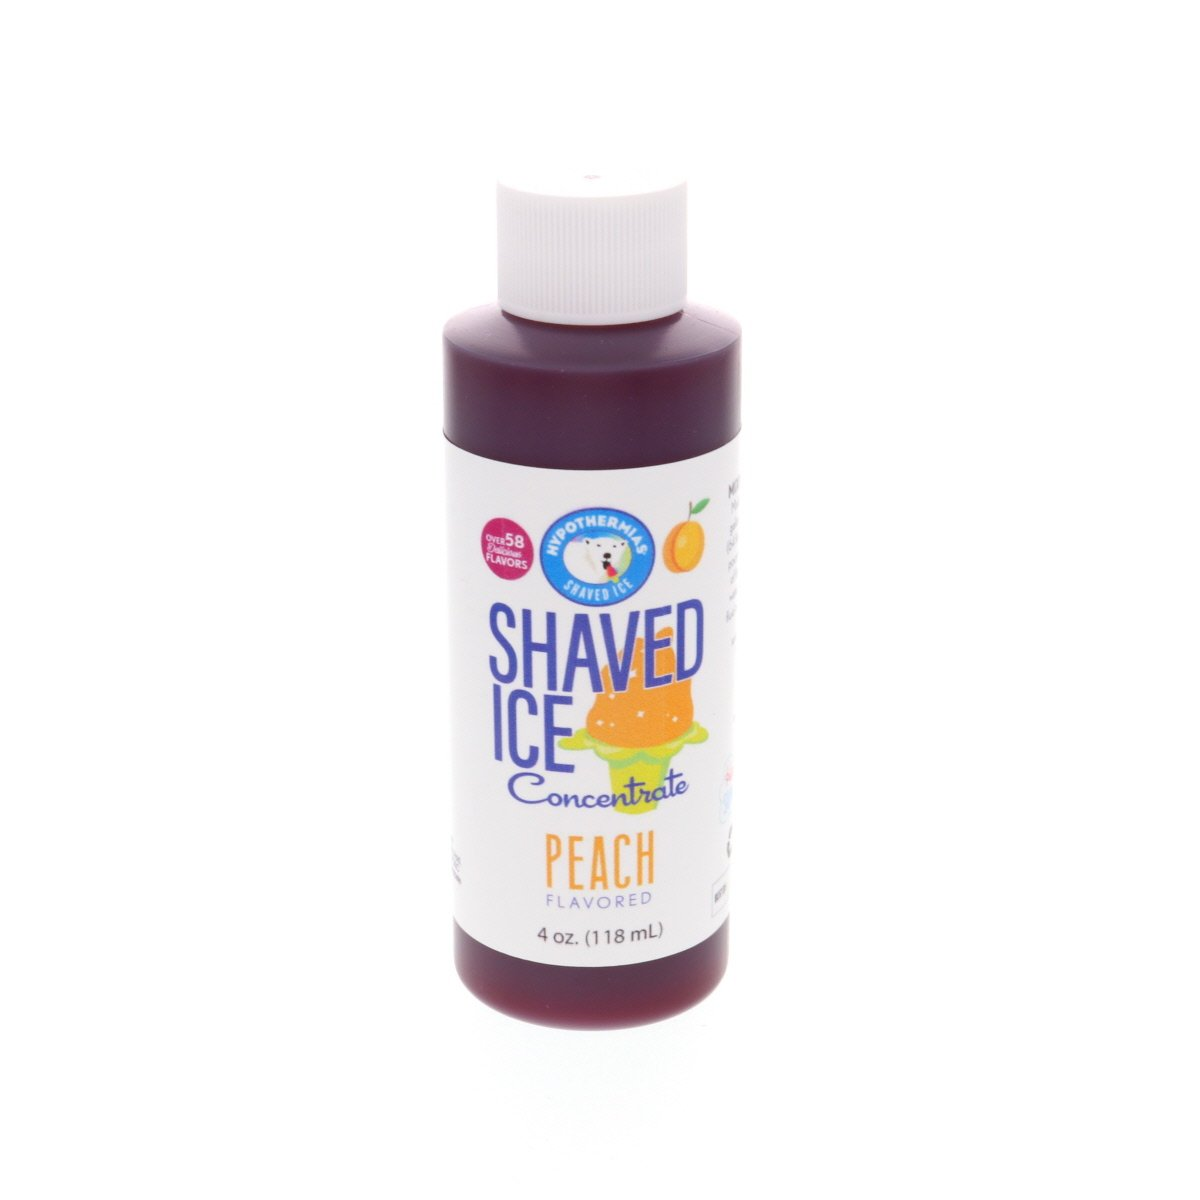 Peach shaved ice flavor concentrate syrup 4 Fl Oz